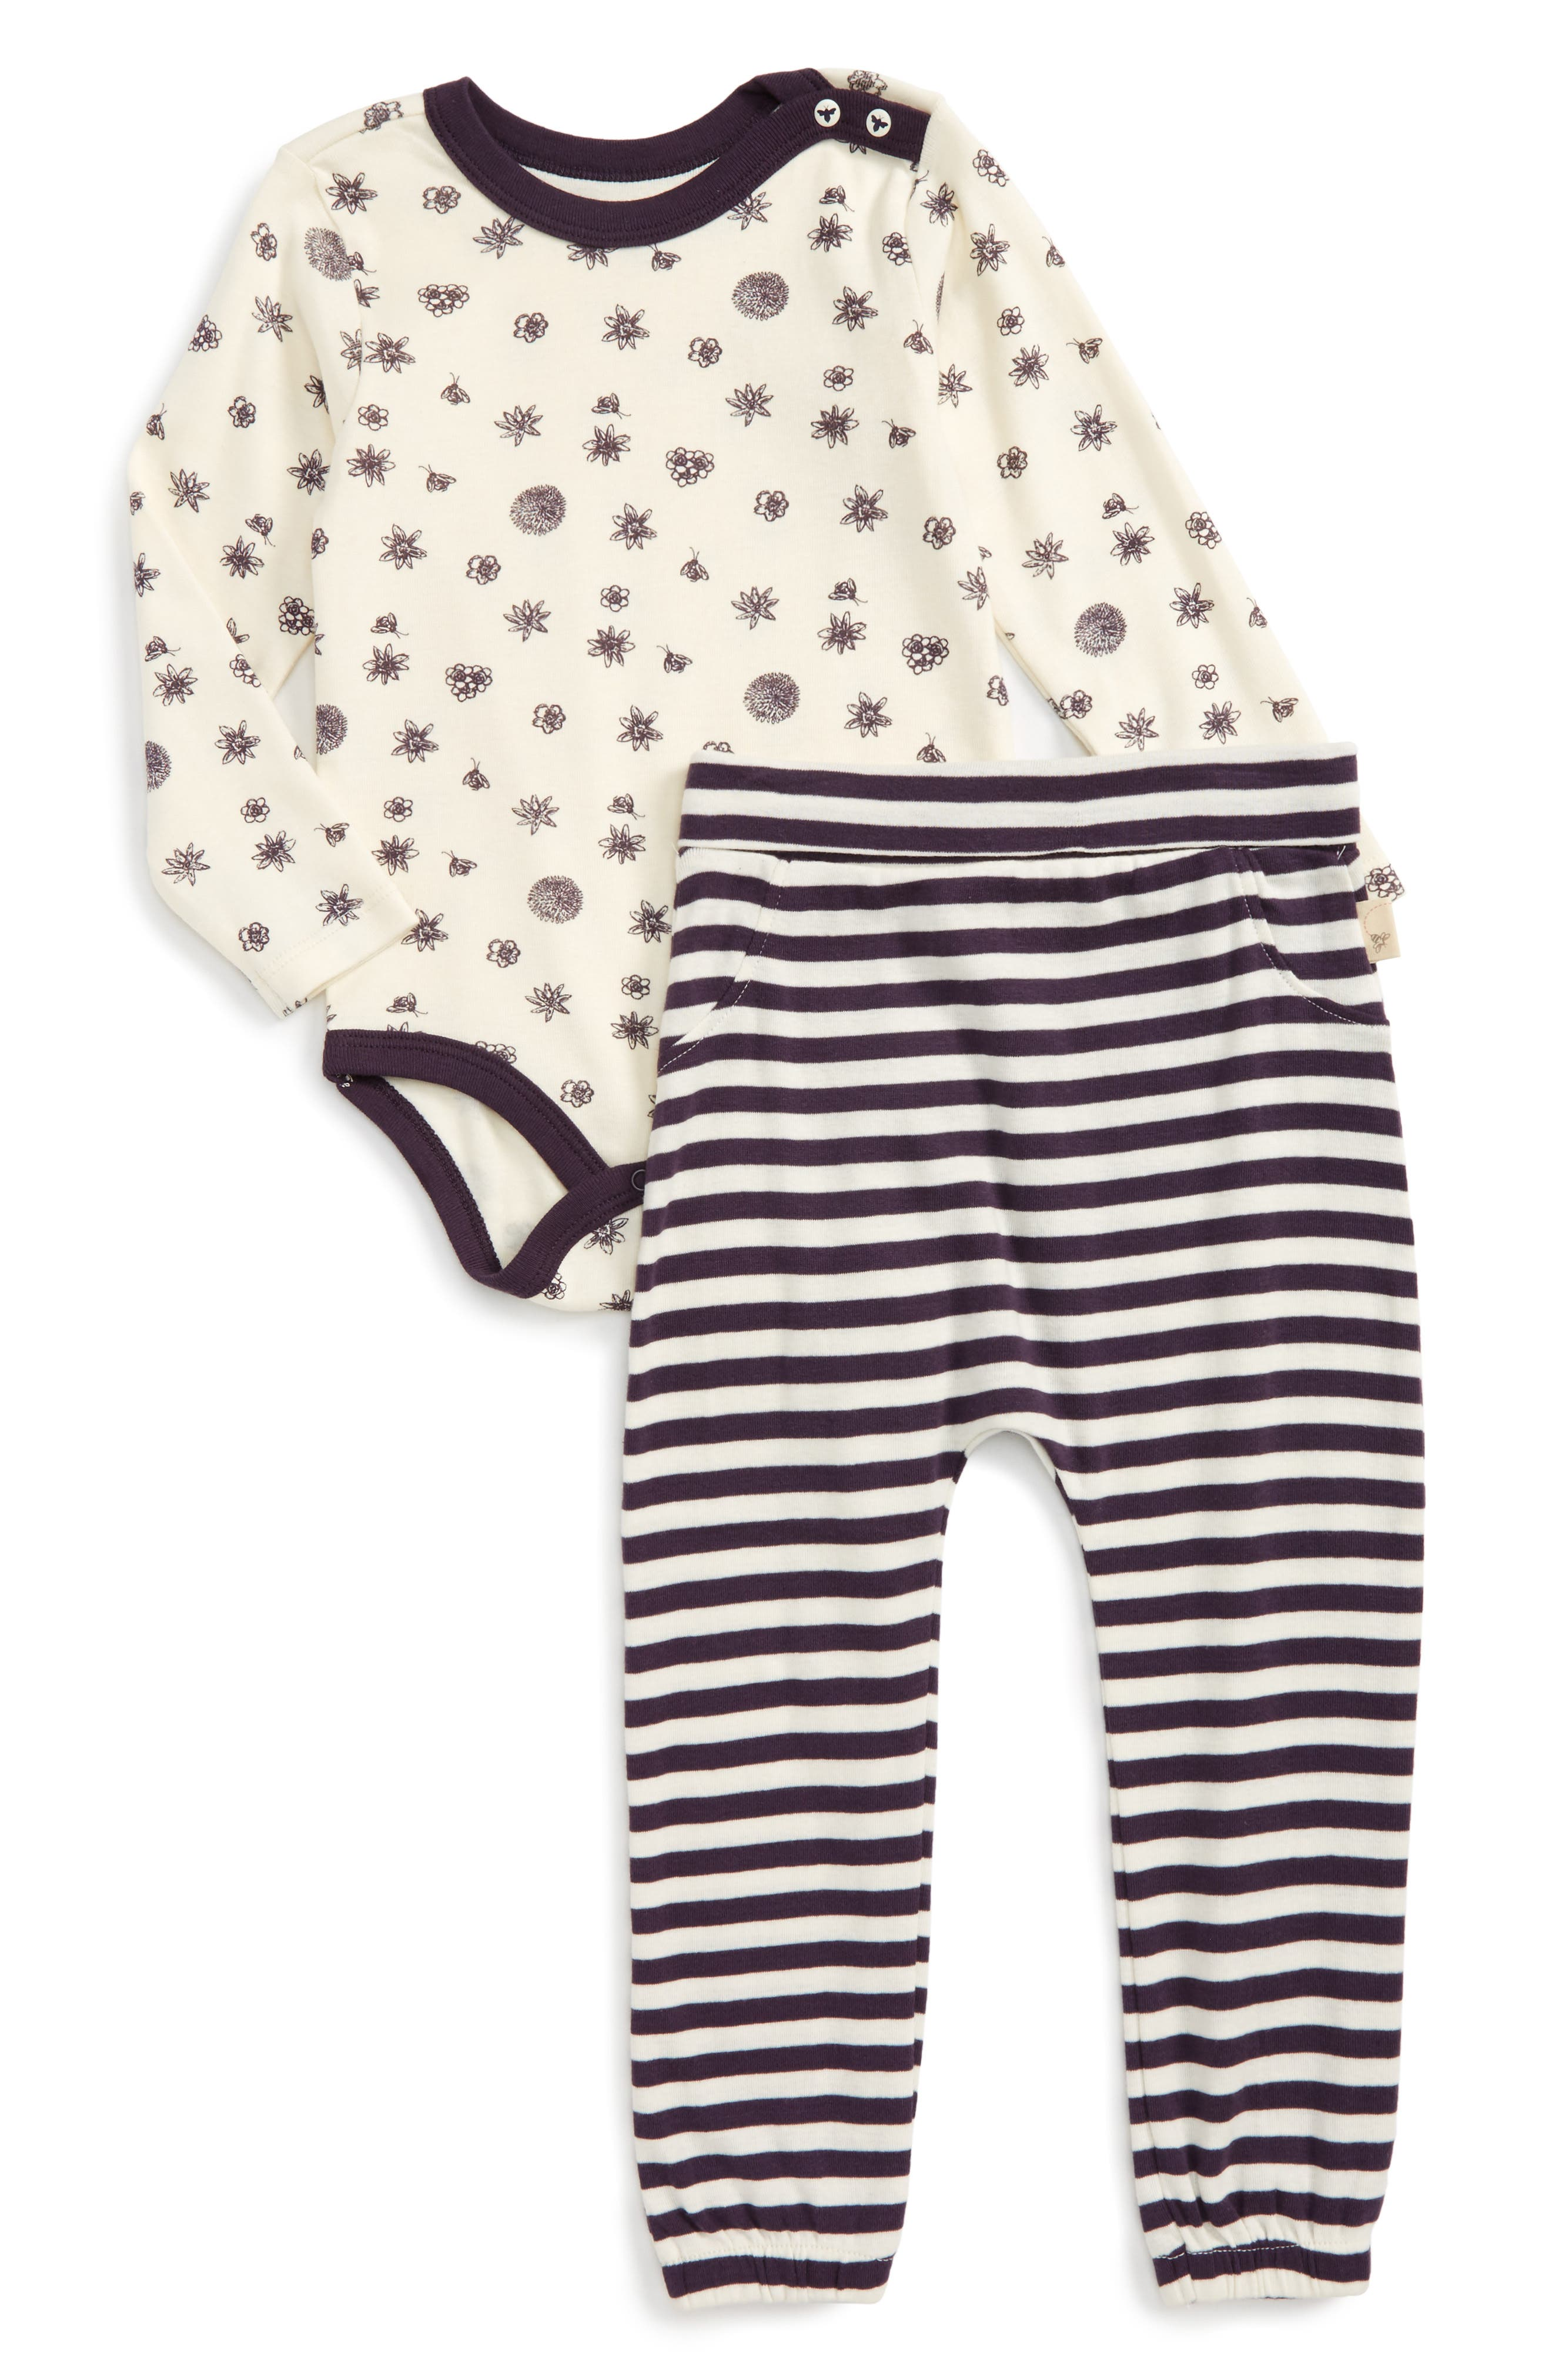 Burt's Bees Baby Foraged Finds Organic Cotton Bodysuit & Pants Set (Baby Girls)